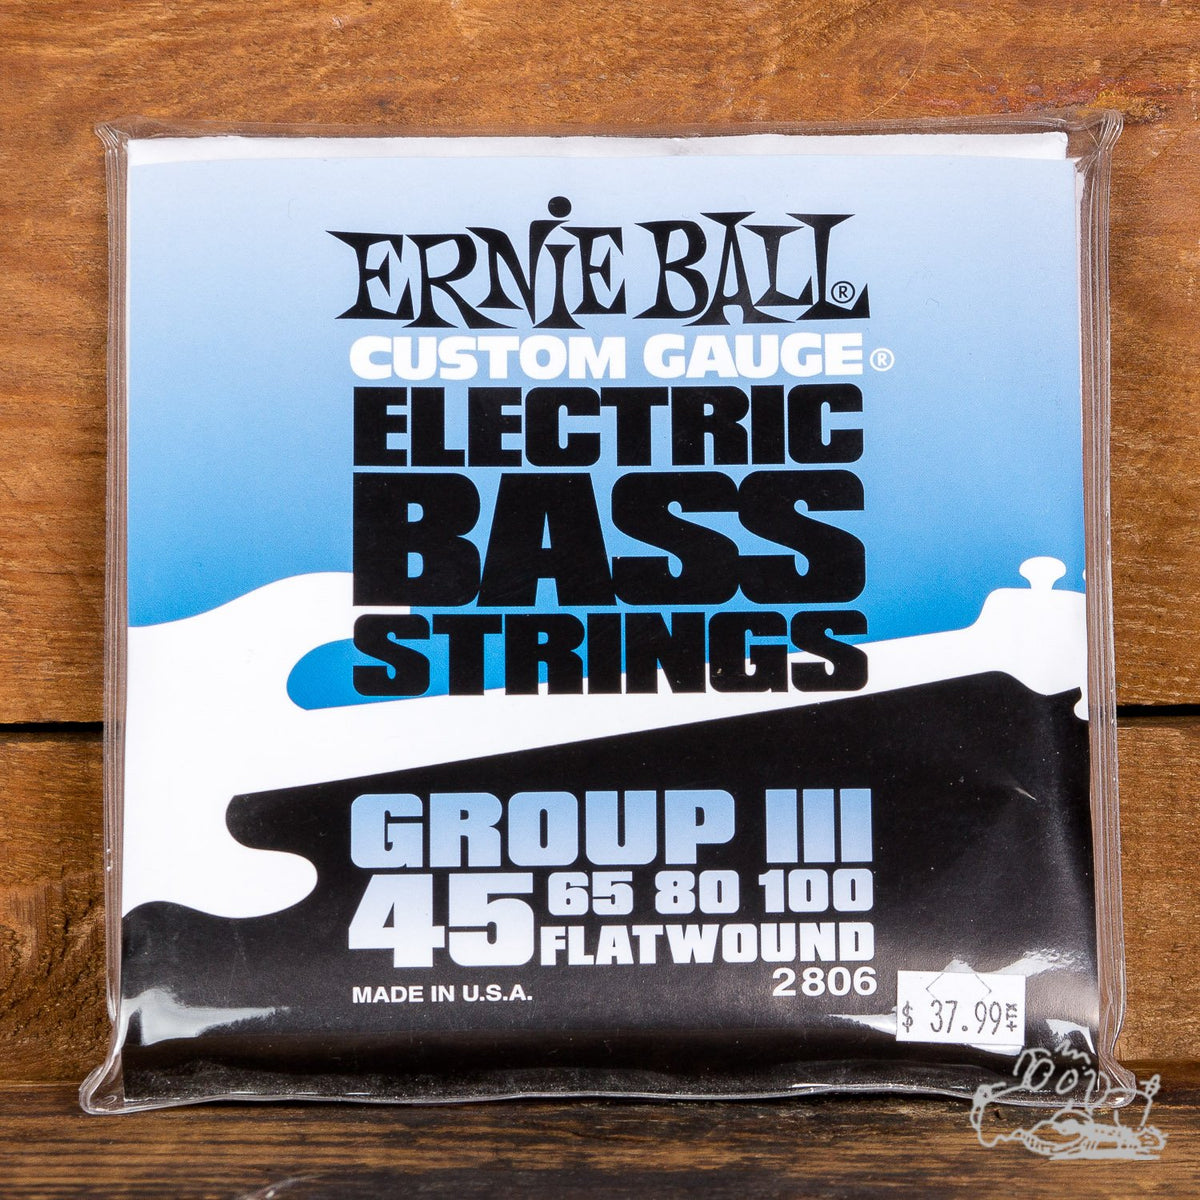 Ernie Ball Group III Flatwound 45-100 Electric Bass Guitar Strings